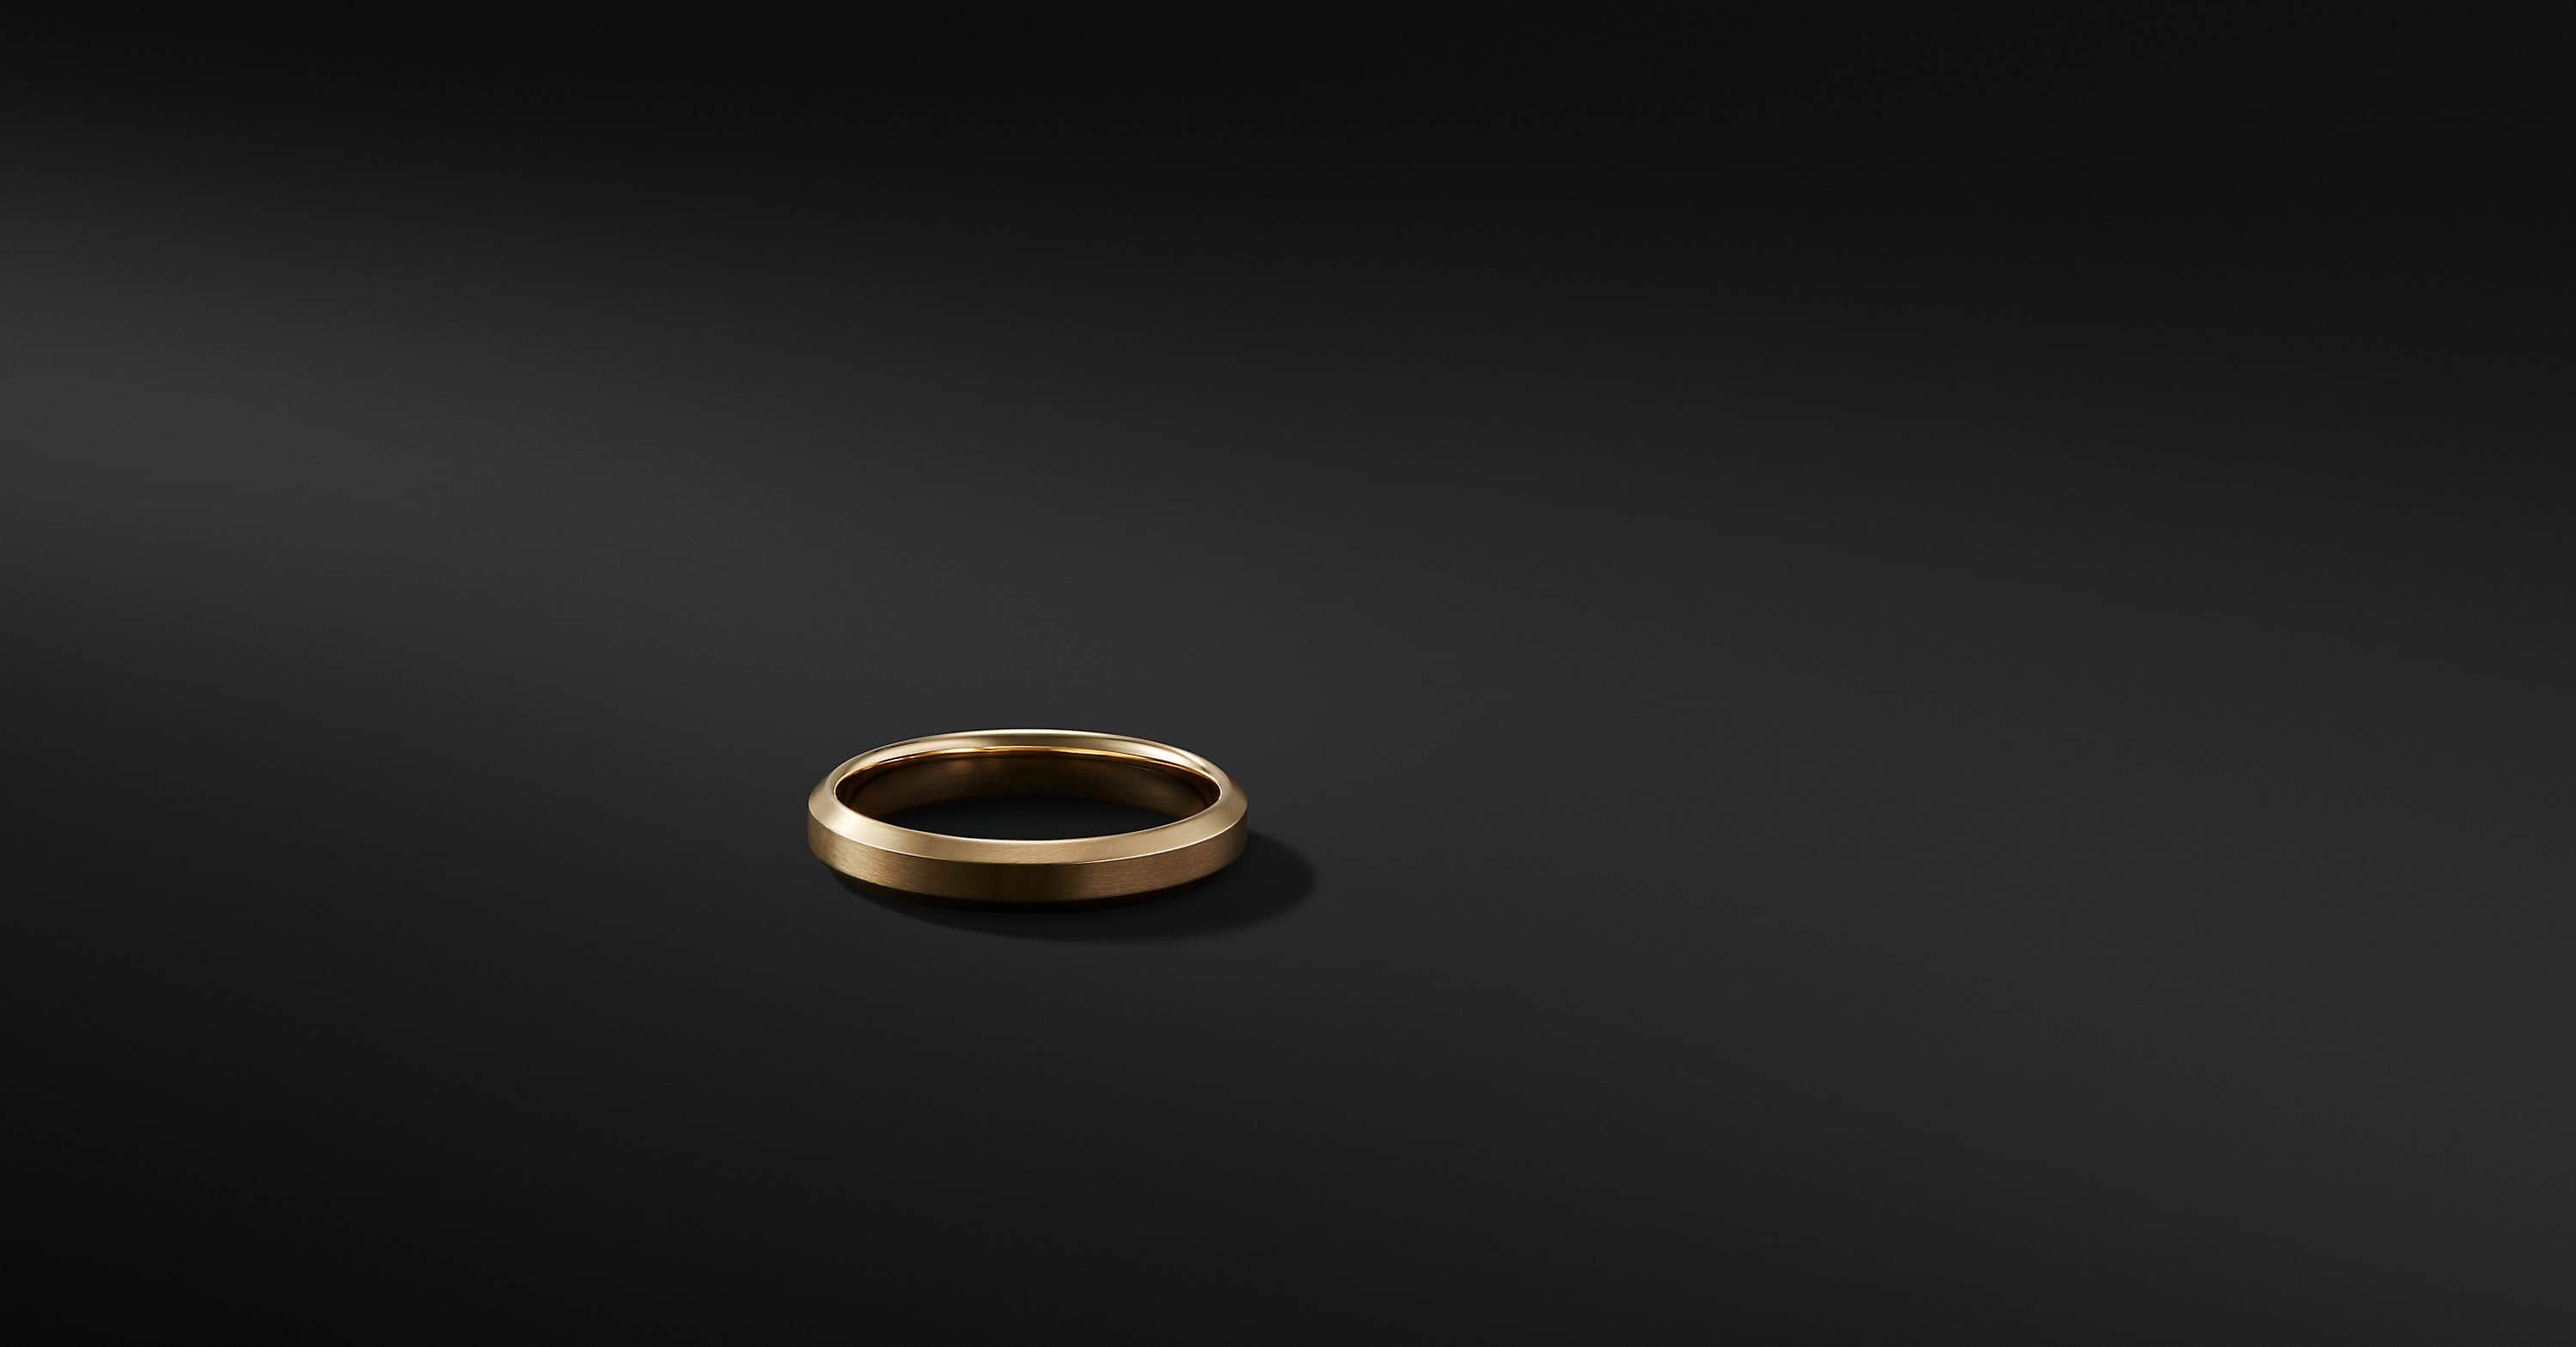 Beveled Band Ring in 18K Gold, 4mm